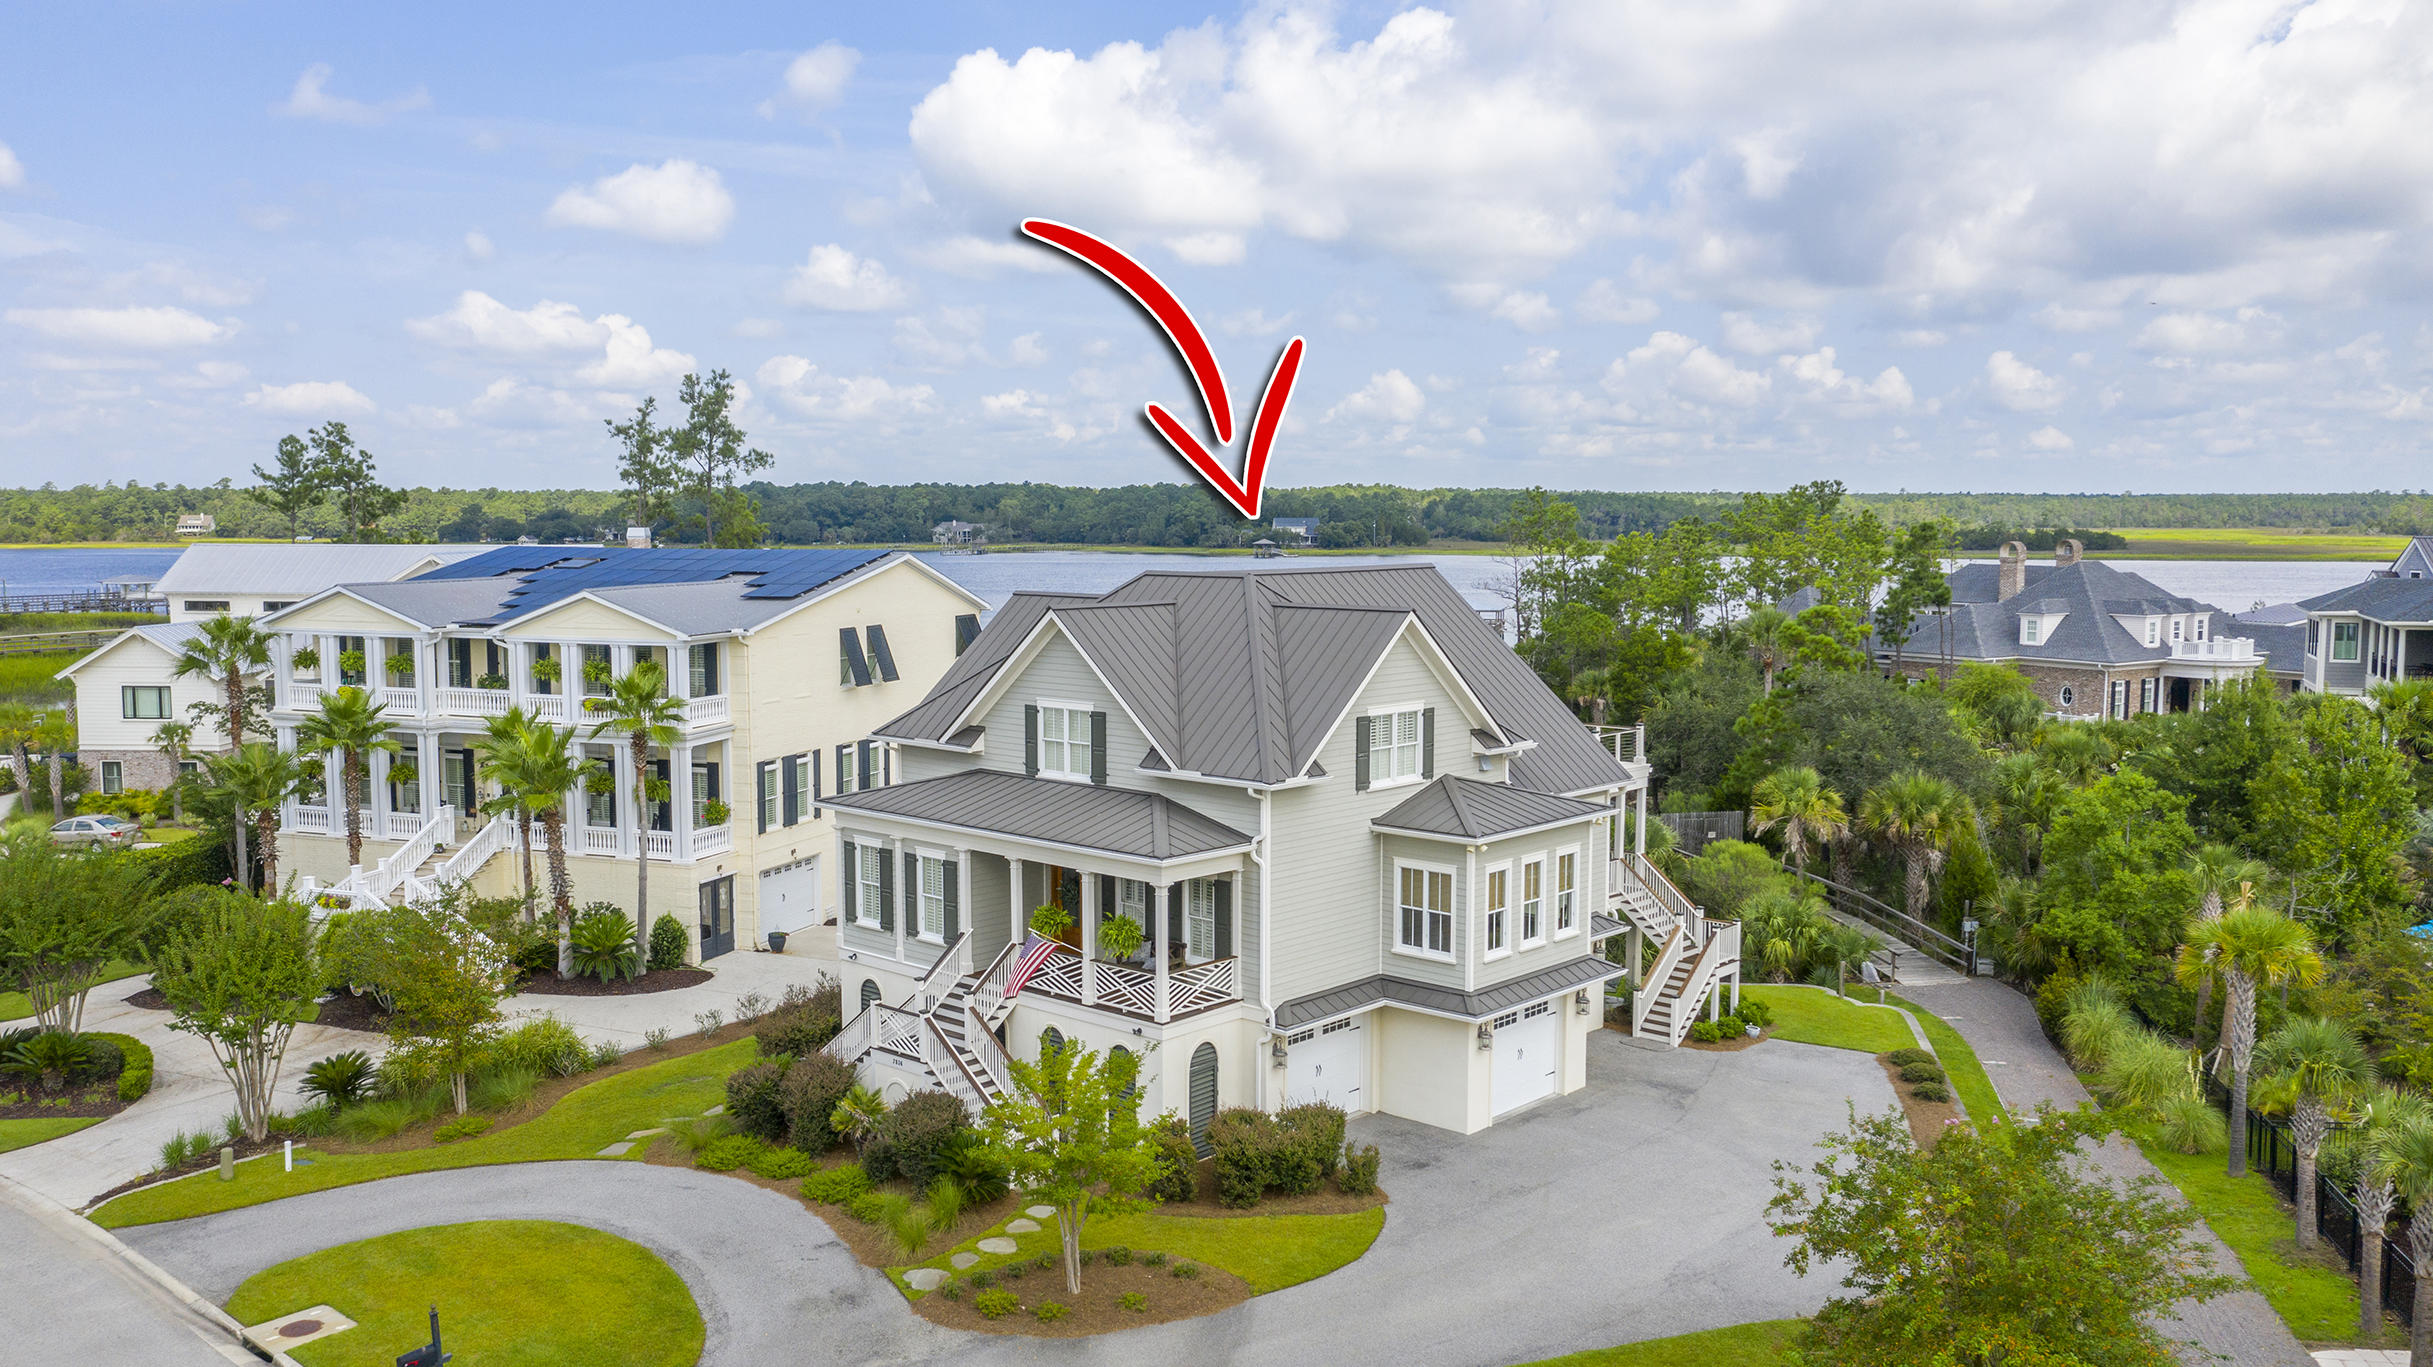 Dunes West Homes For Sale - 2836 Stay Sail, Mount Pleasant, SC - 1